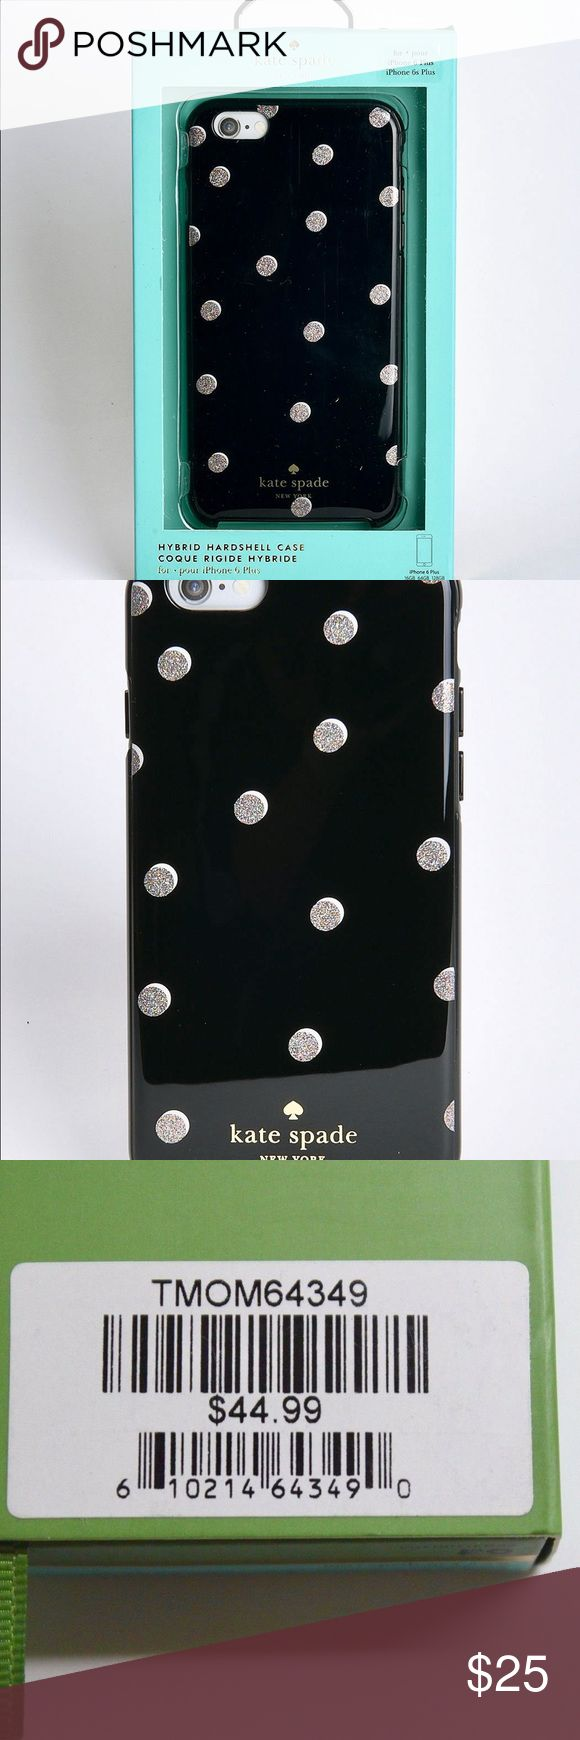 Authentic Kate Spade iPhone Hard Shell Case SALE Authentic Kate Spade Hybrid Hardshell Case  For: iPhone 6 Plus/6s - Trendy, durable, phone protection - Glossy finish, glitter black, rose gold, polka dots - New in retail package, with tag  - Feel free to ask any questions about my listings or  make a reasonable offer close to my selling price! kate spade Accessories Phone Cases